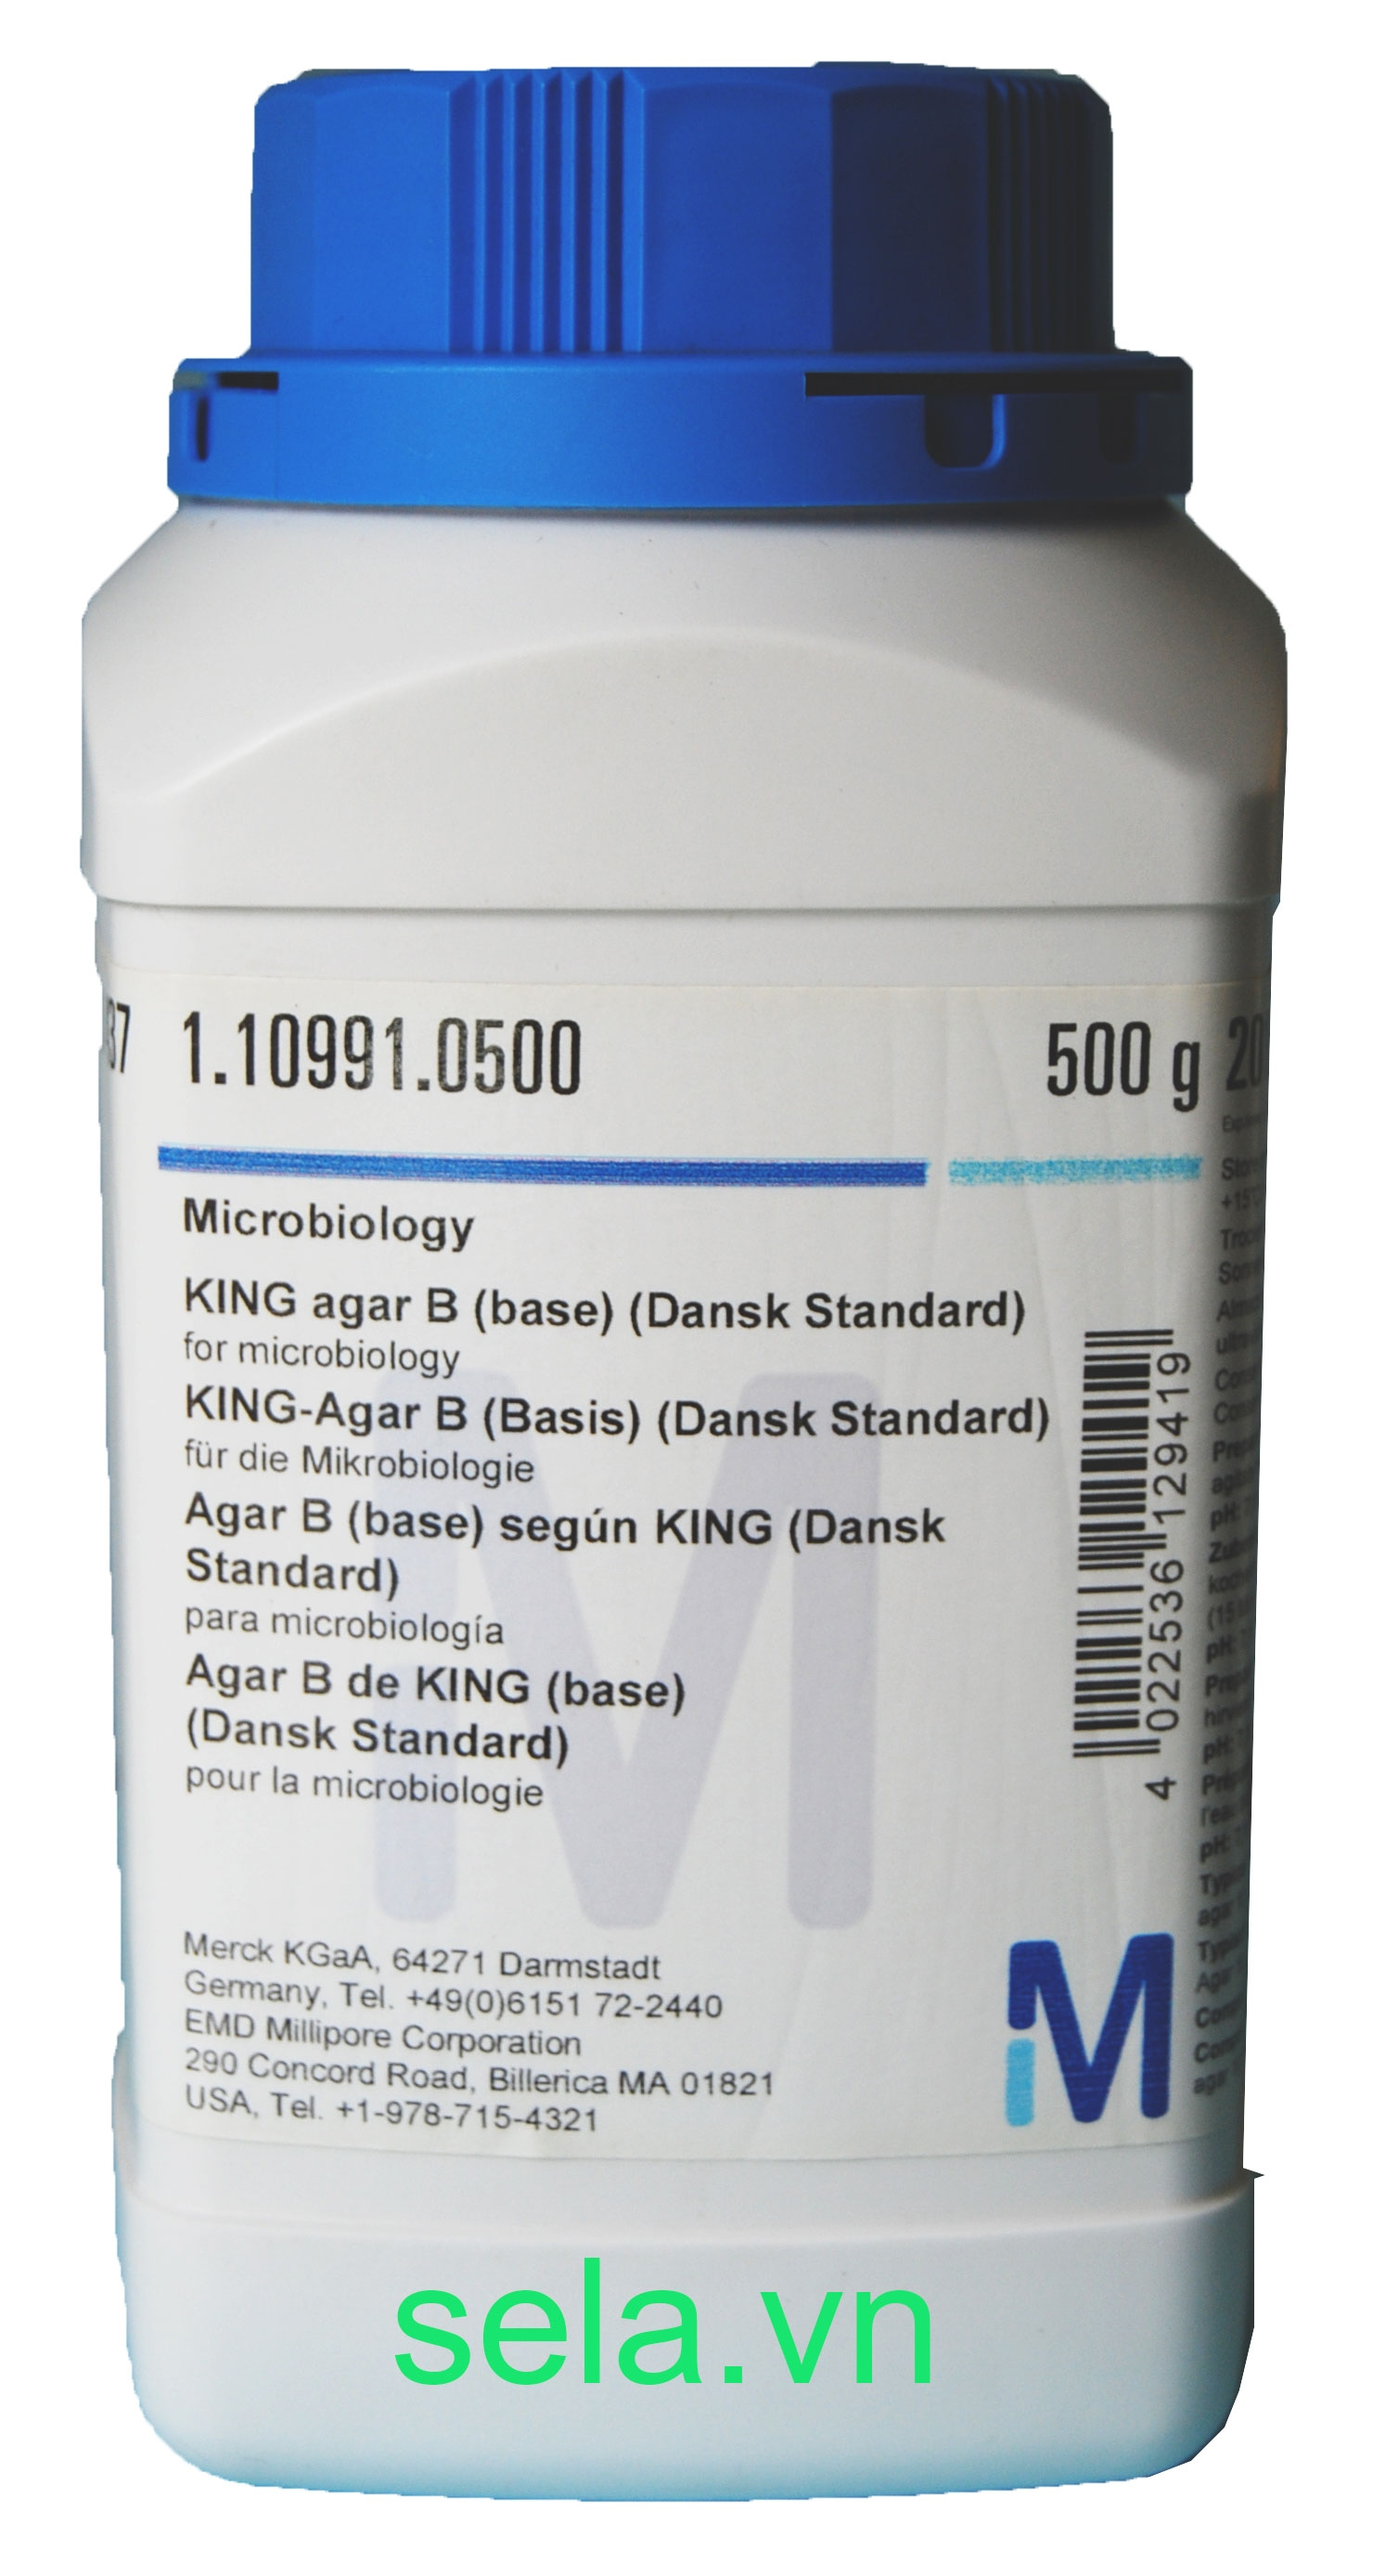 KING agar B (base) (Dansk Standard) for microbiology